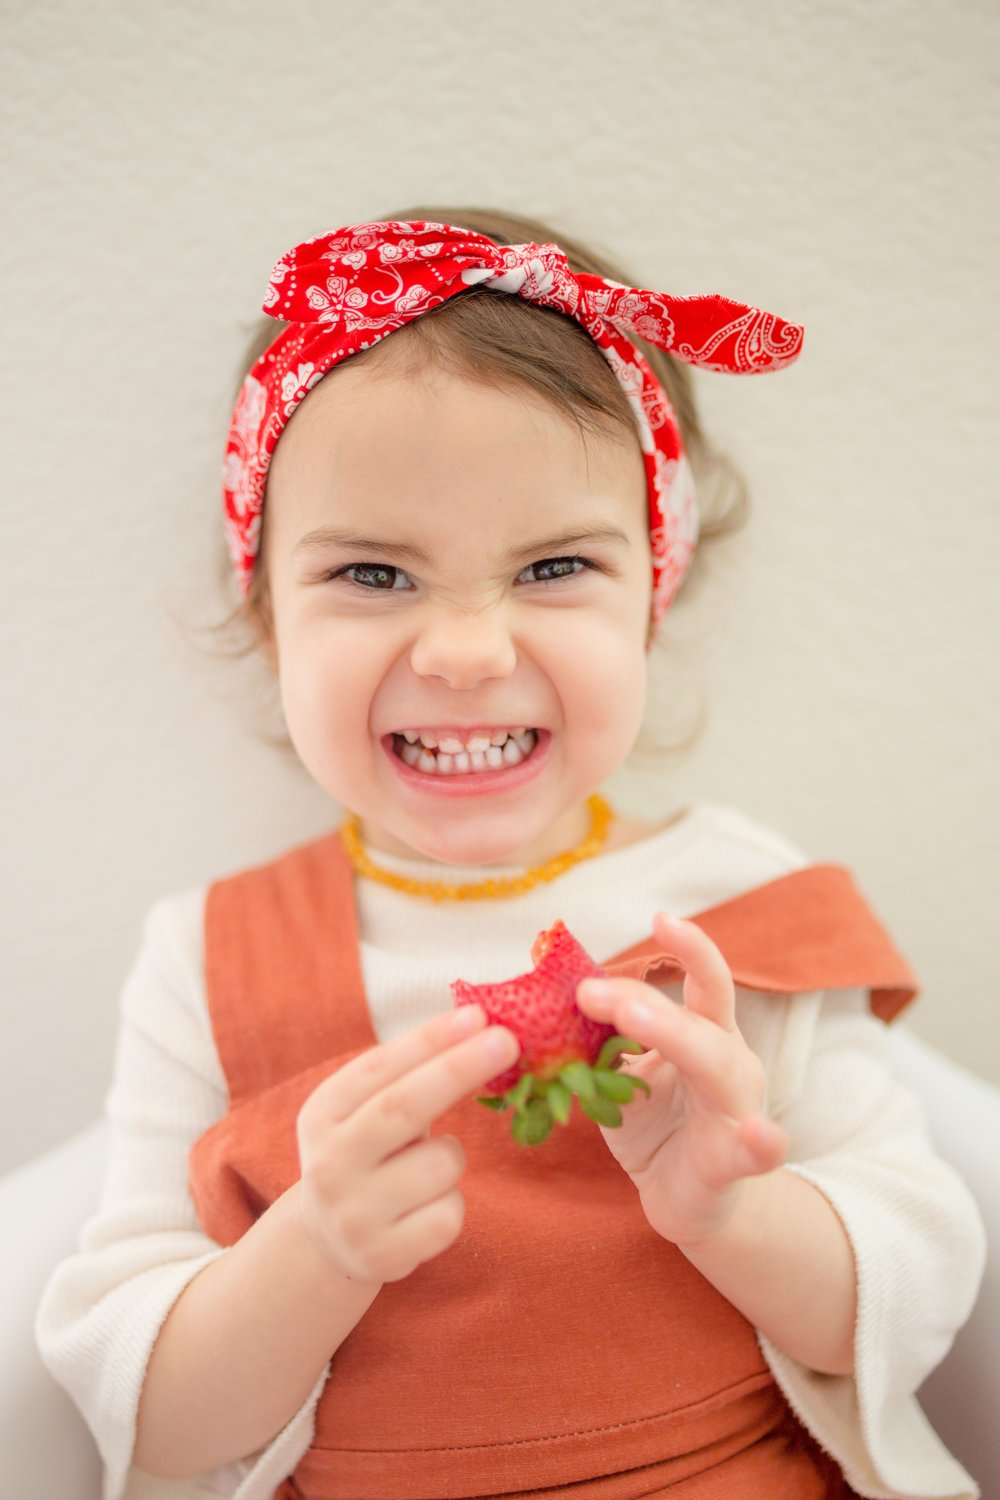 Toddler girl with red bandana eating fresh strawberry with a huge smile on her face